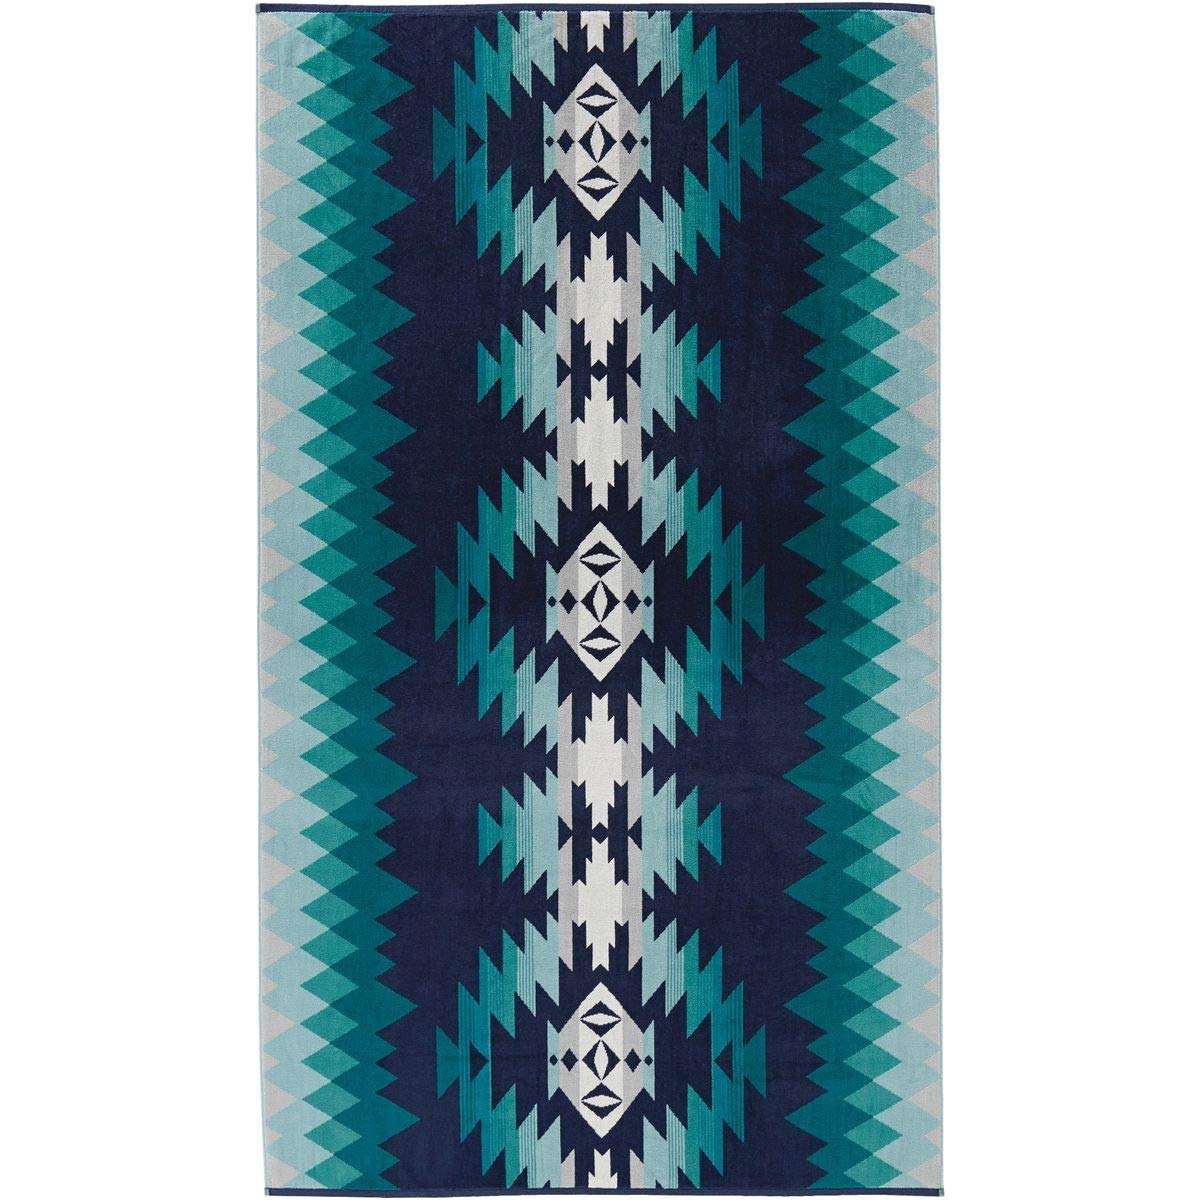 Pendleton Oversize Cotton Beach Towel